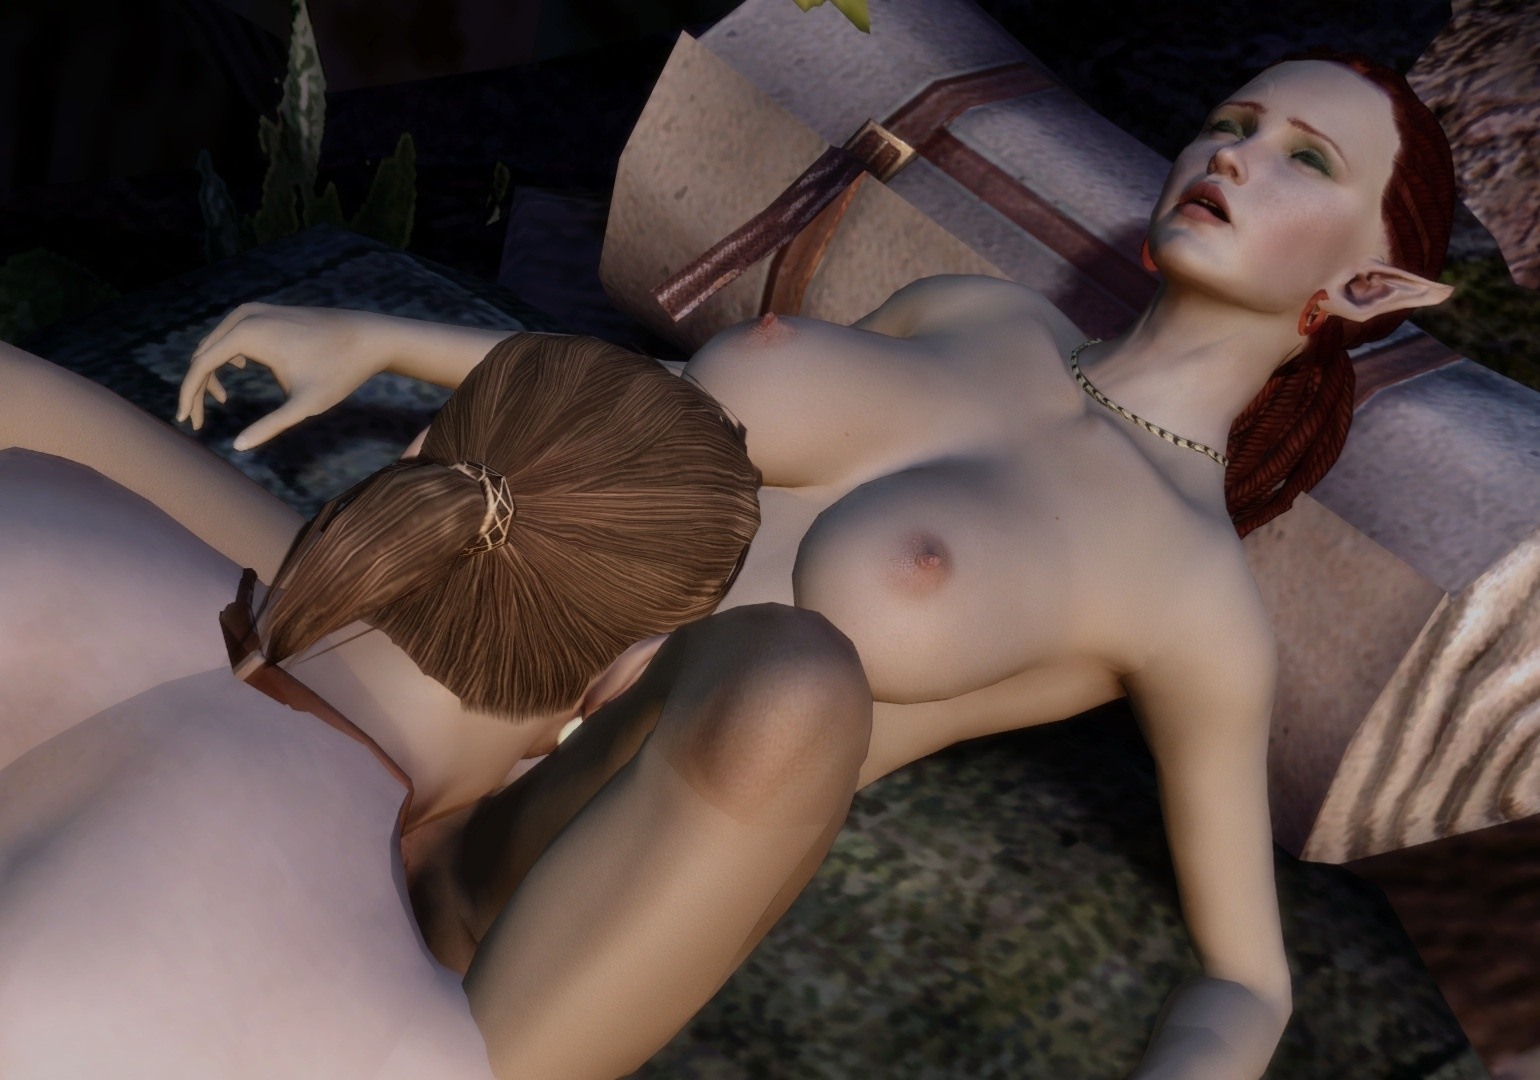 Dragon age naked pics sexy pic